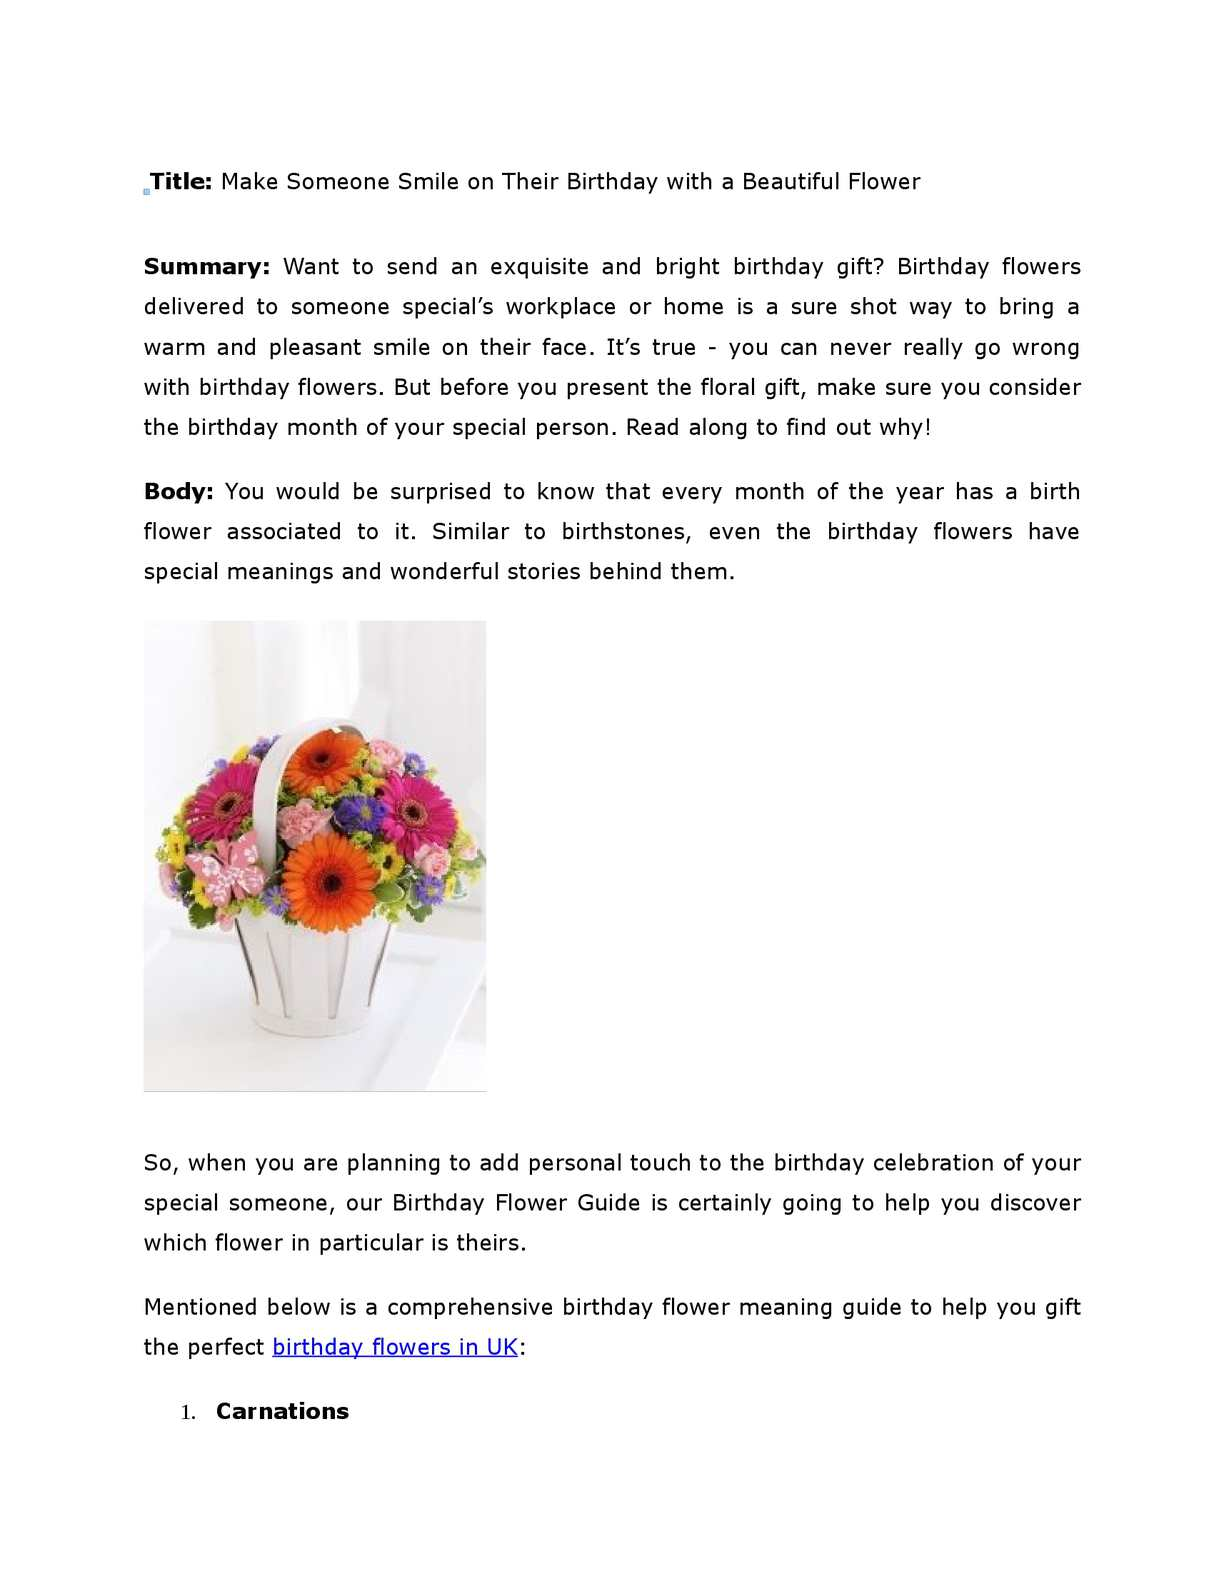 Calaméo - Make Someone Smile on Their Birthday with a Beautiful Flower